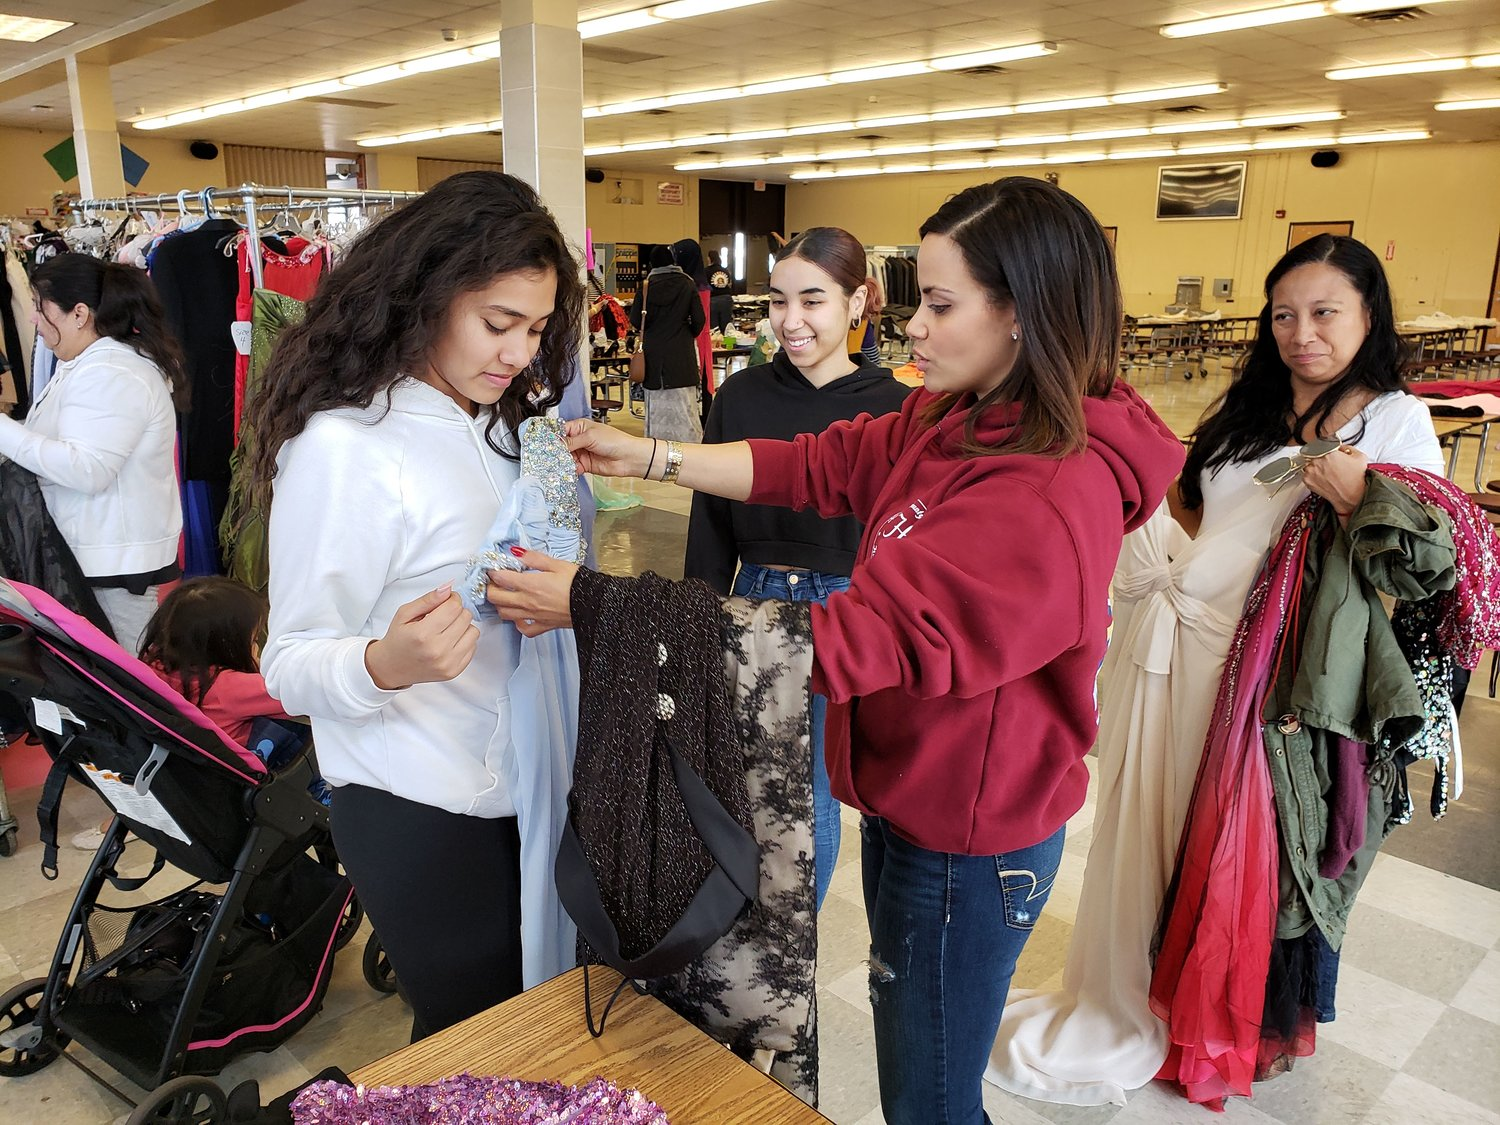 Freeport Police officer Samantha Sepulveda, right, helped Freeport High School senior Jylene Jaquez, 18, pick out a dress for the prom, while senior Valentina Vinusuion, 17, looked on at A Dream Prom Boutique on March 30.